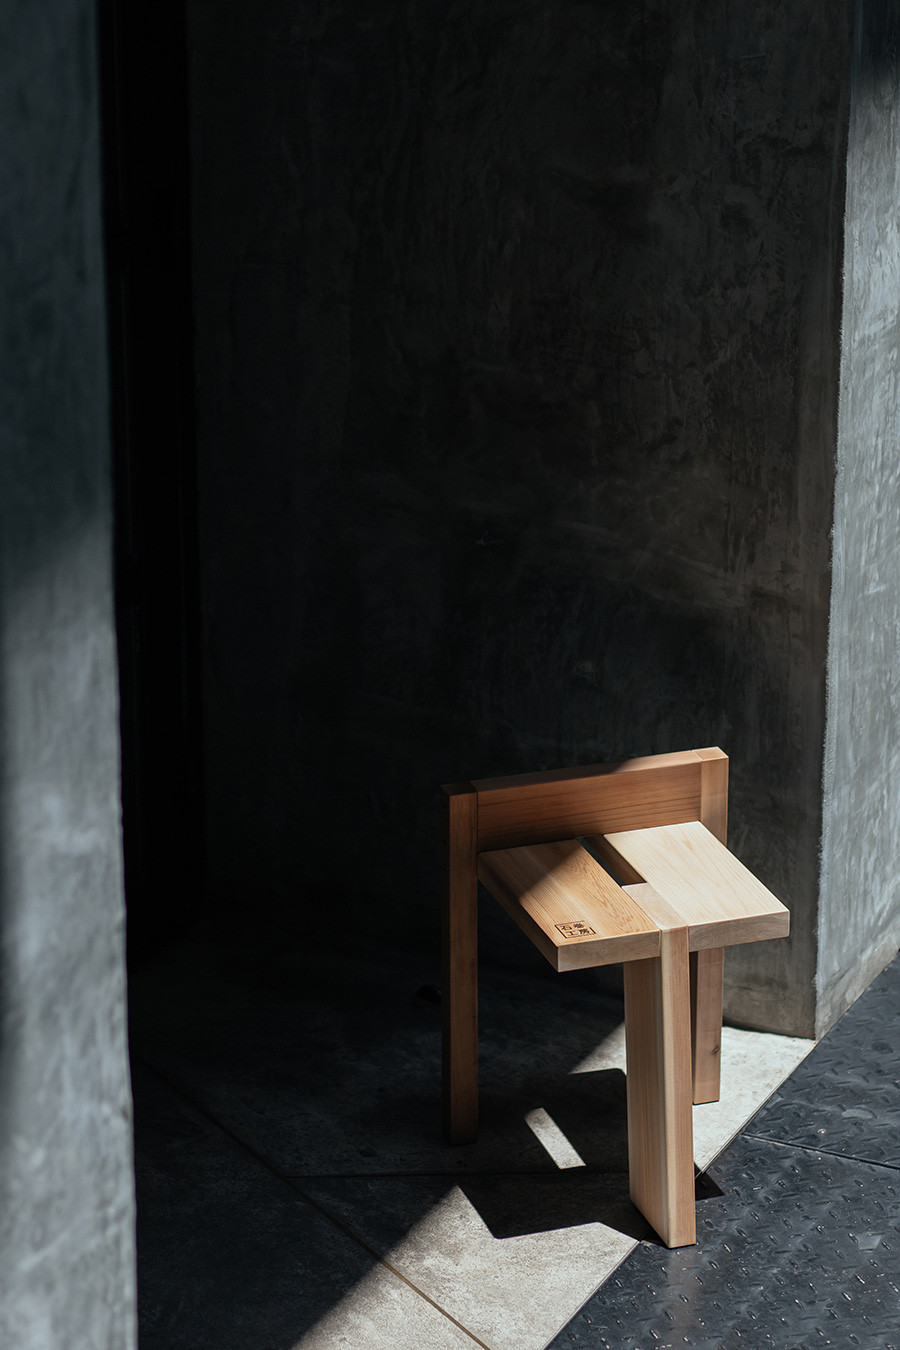 Tripodal Stool by Studio Adjective.